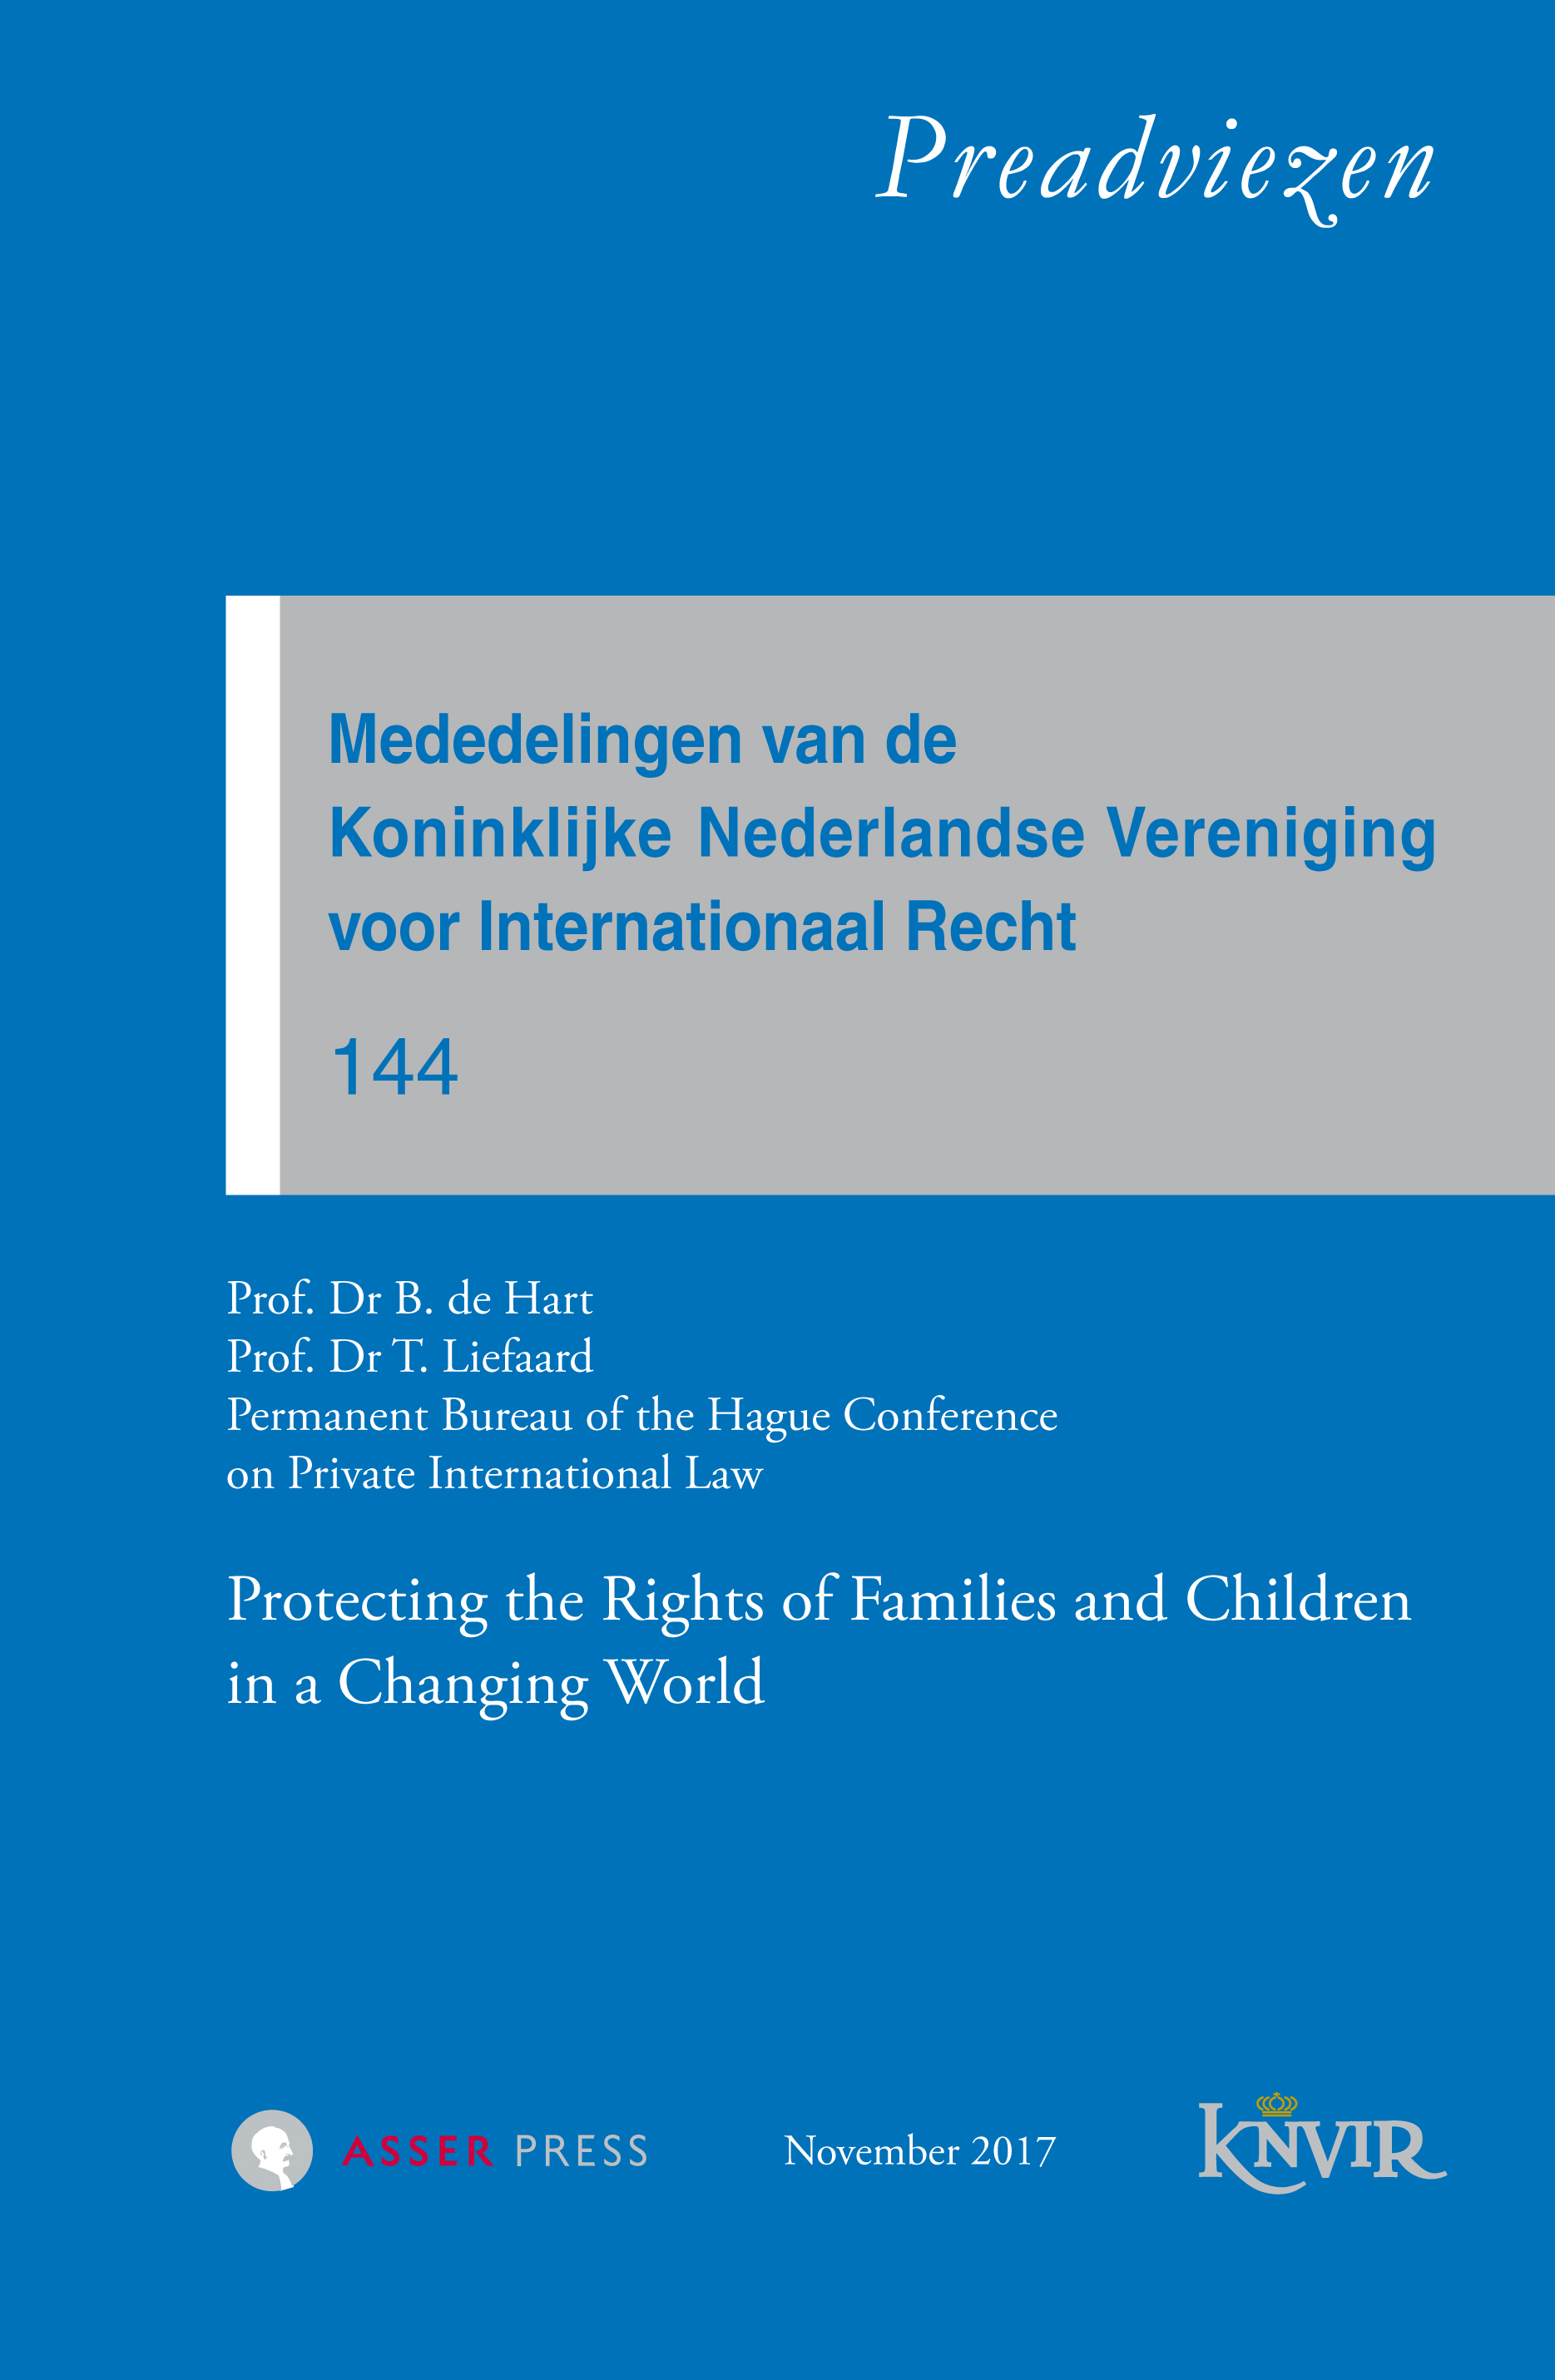 Mededelingen van de Koninklijke Nederlandse Vereniging voor Internationaal Recht - nr 144 - Protecting the Rights of Families and Children in a Changing World